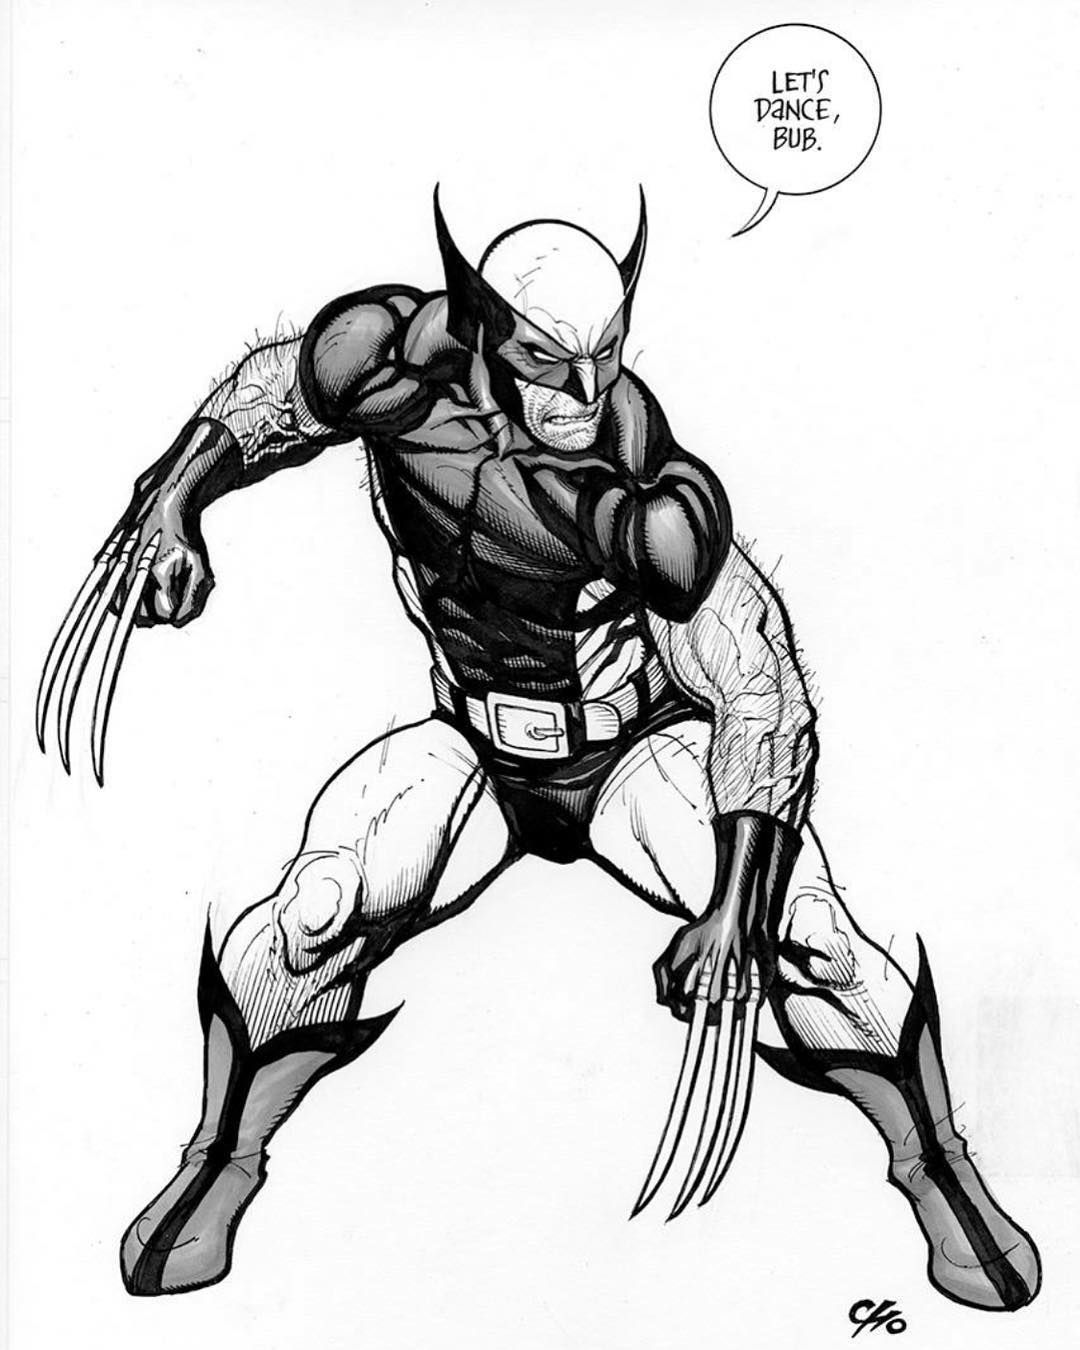 da373384f33 Wolverine Drawing   Free download best Wolverine Drawing on ...